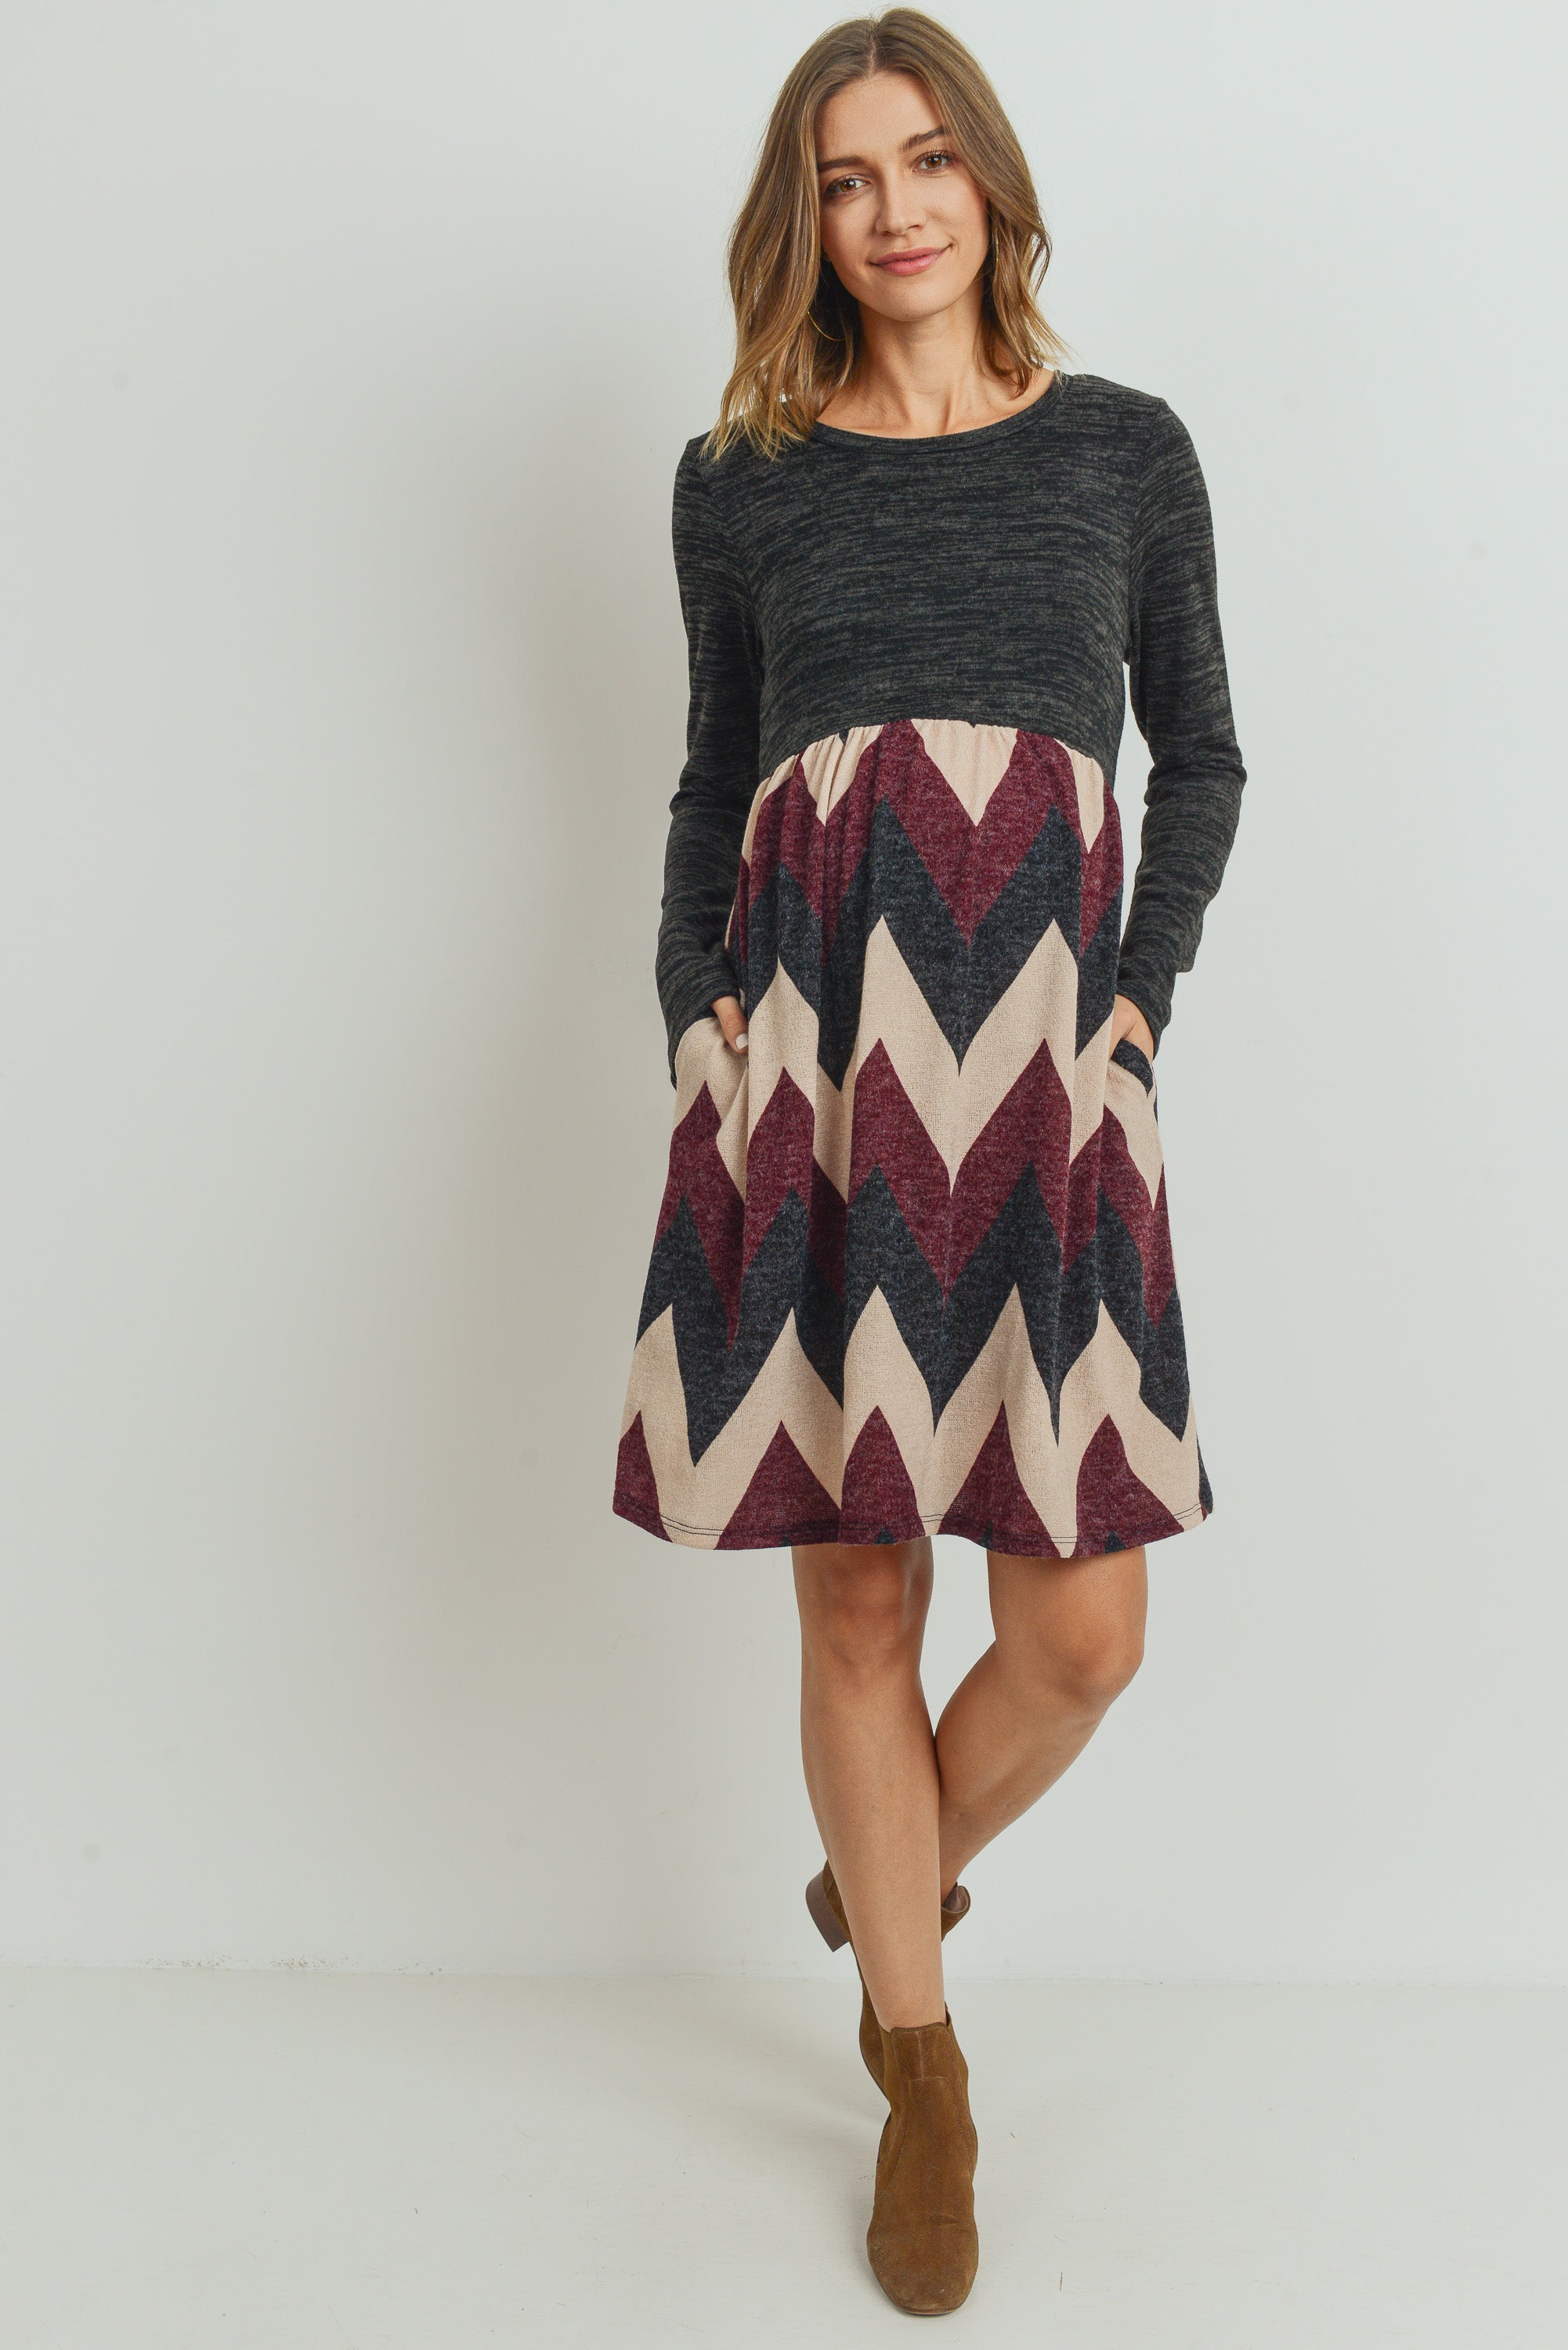 Zig Zag Long Sleeve Knit Maternity Dress with Side Pocket